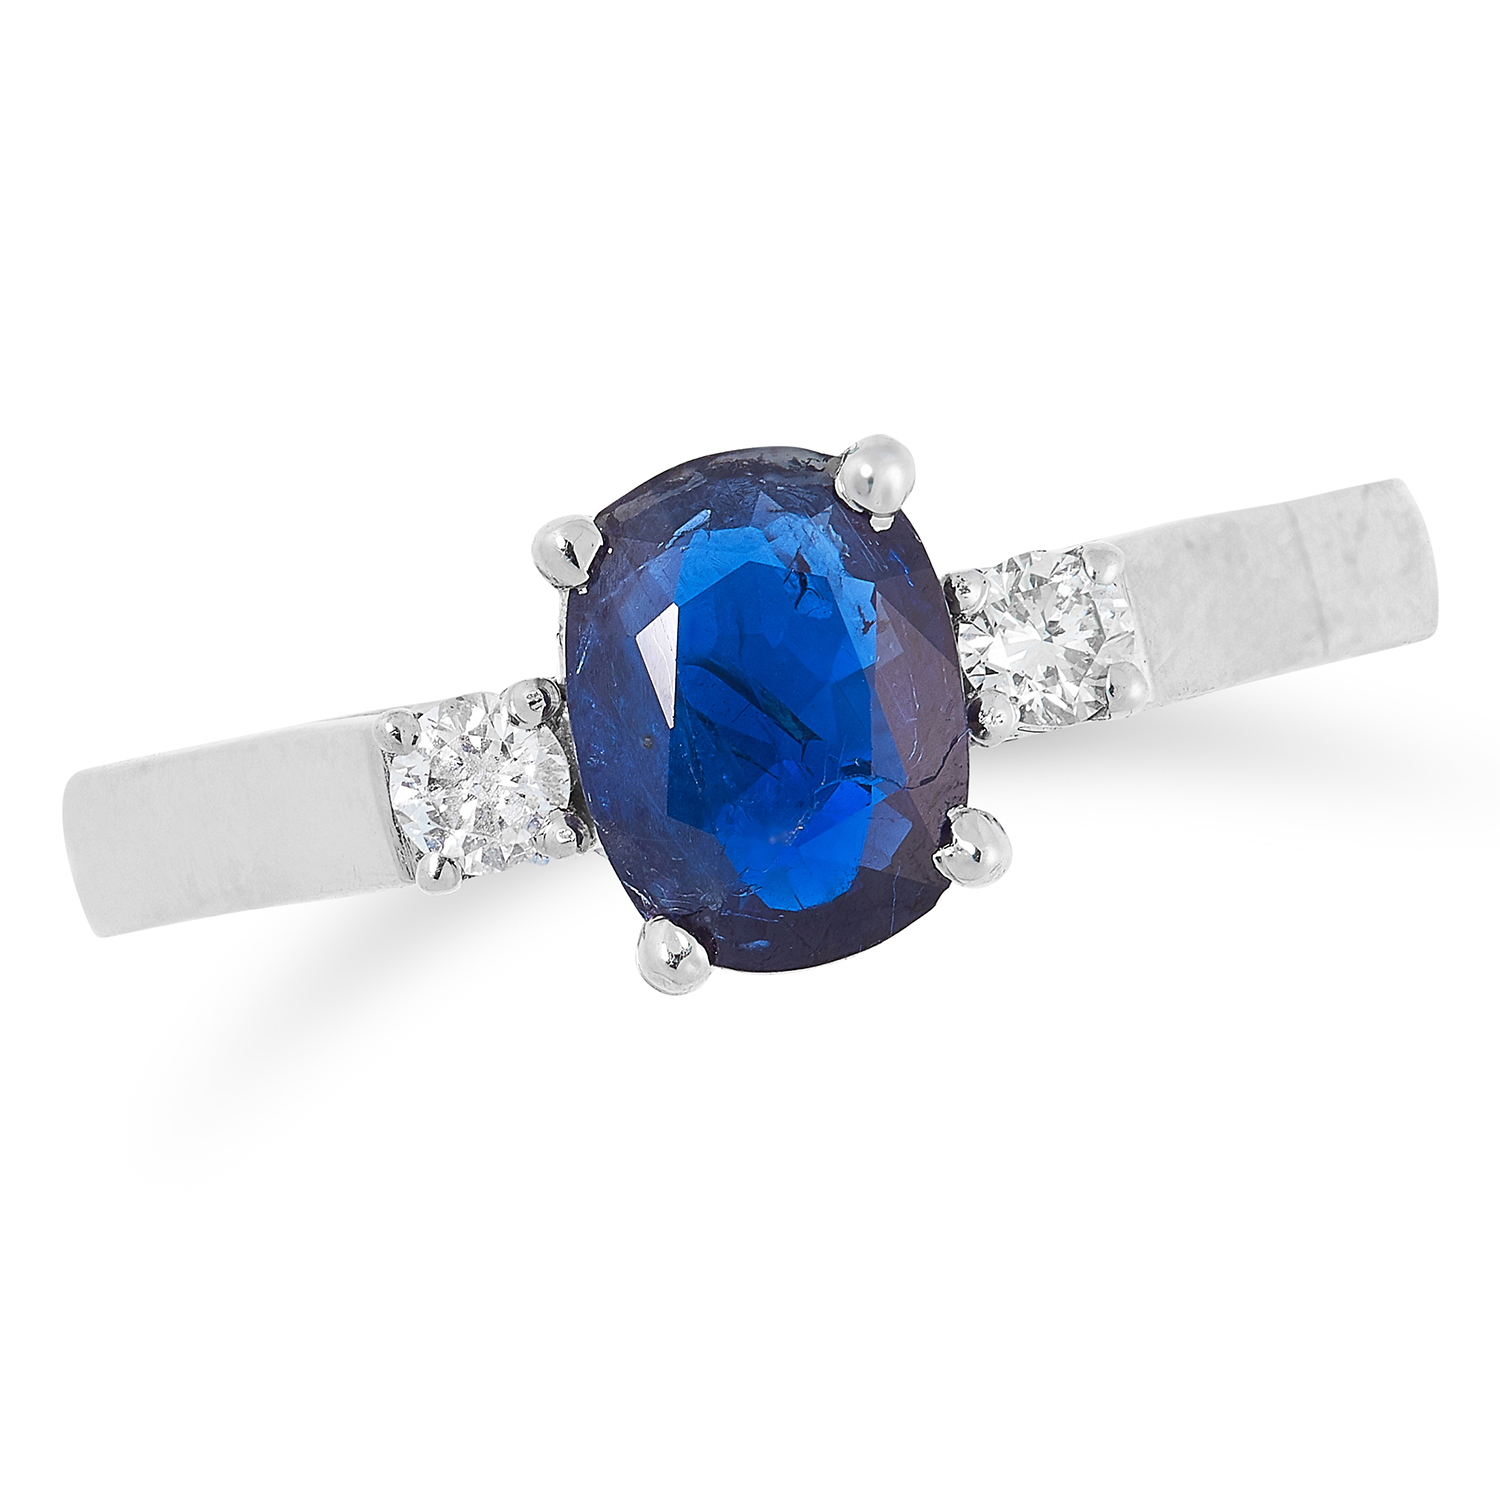 SAPPHIRE AND DIAMOND THREE STONE RING set with an oval cut sapphire between two round cut